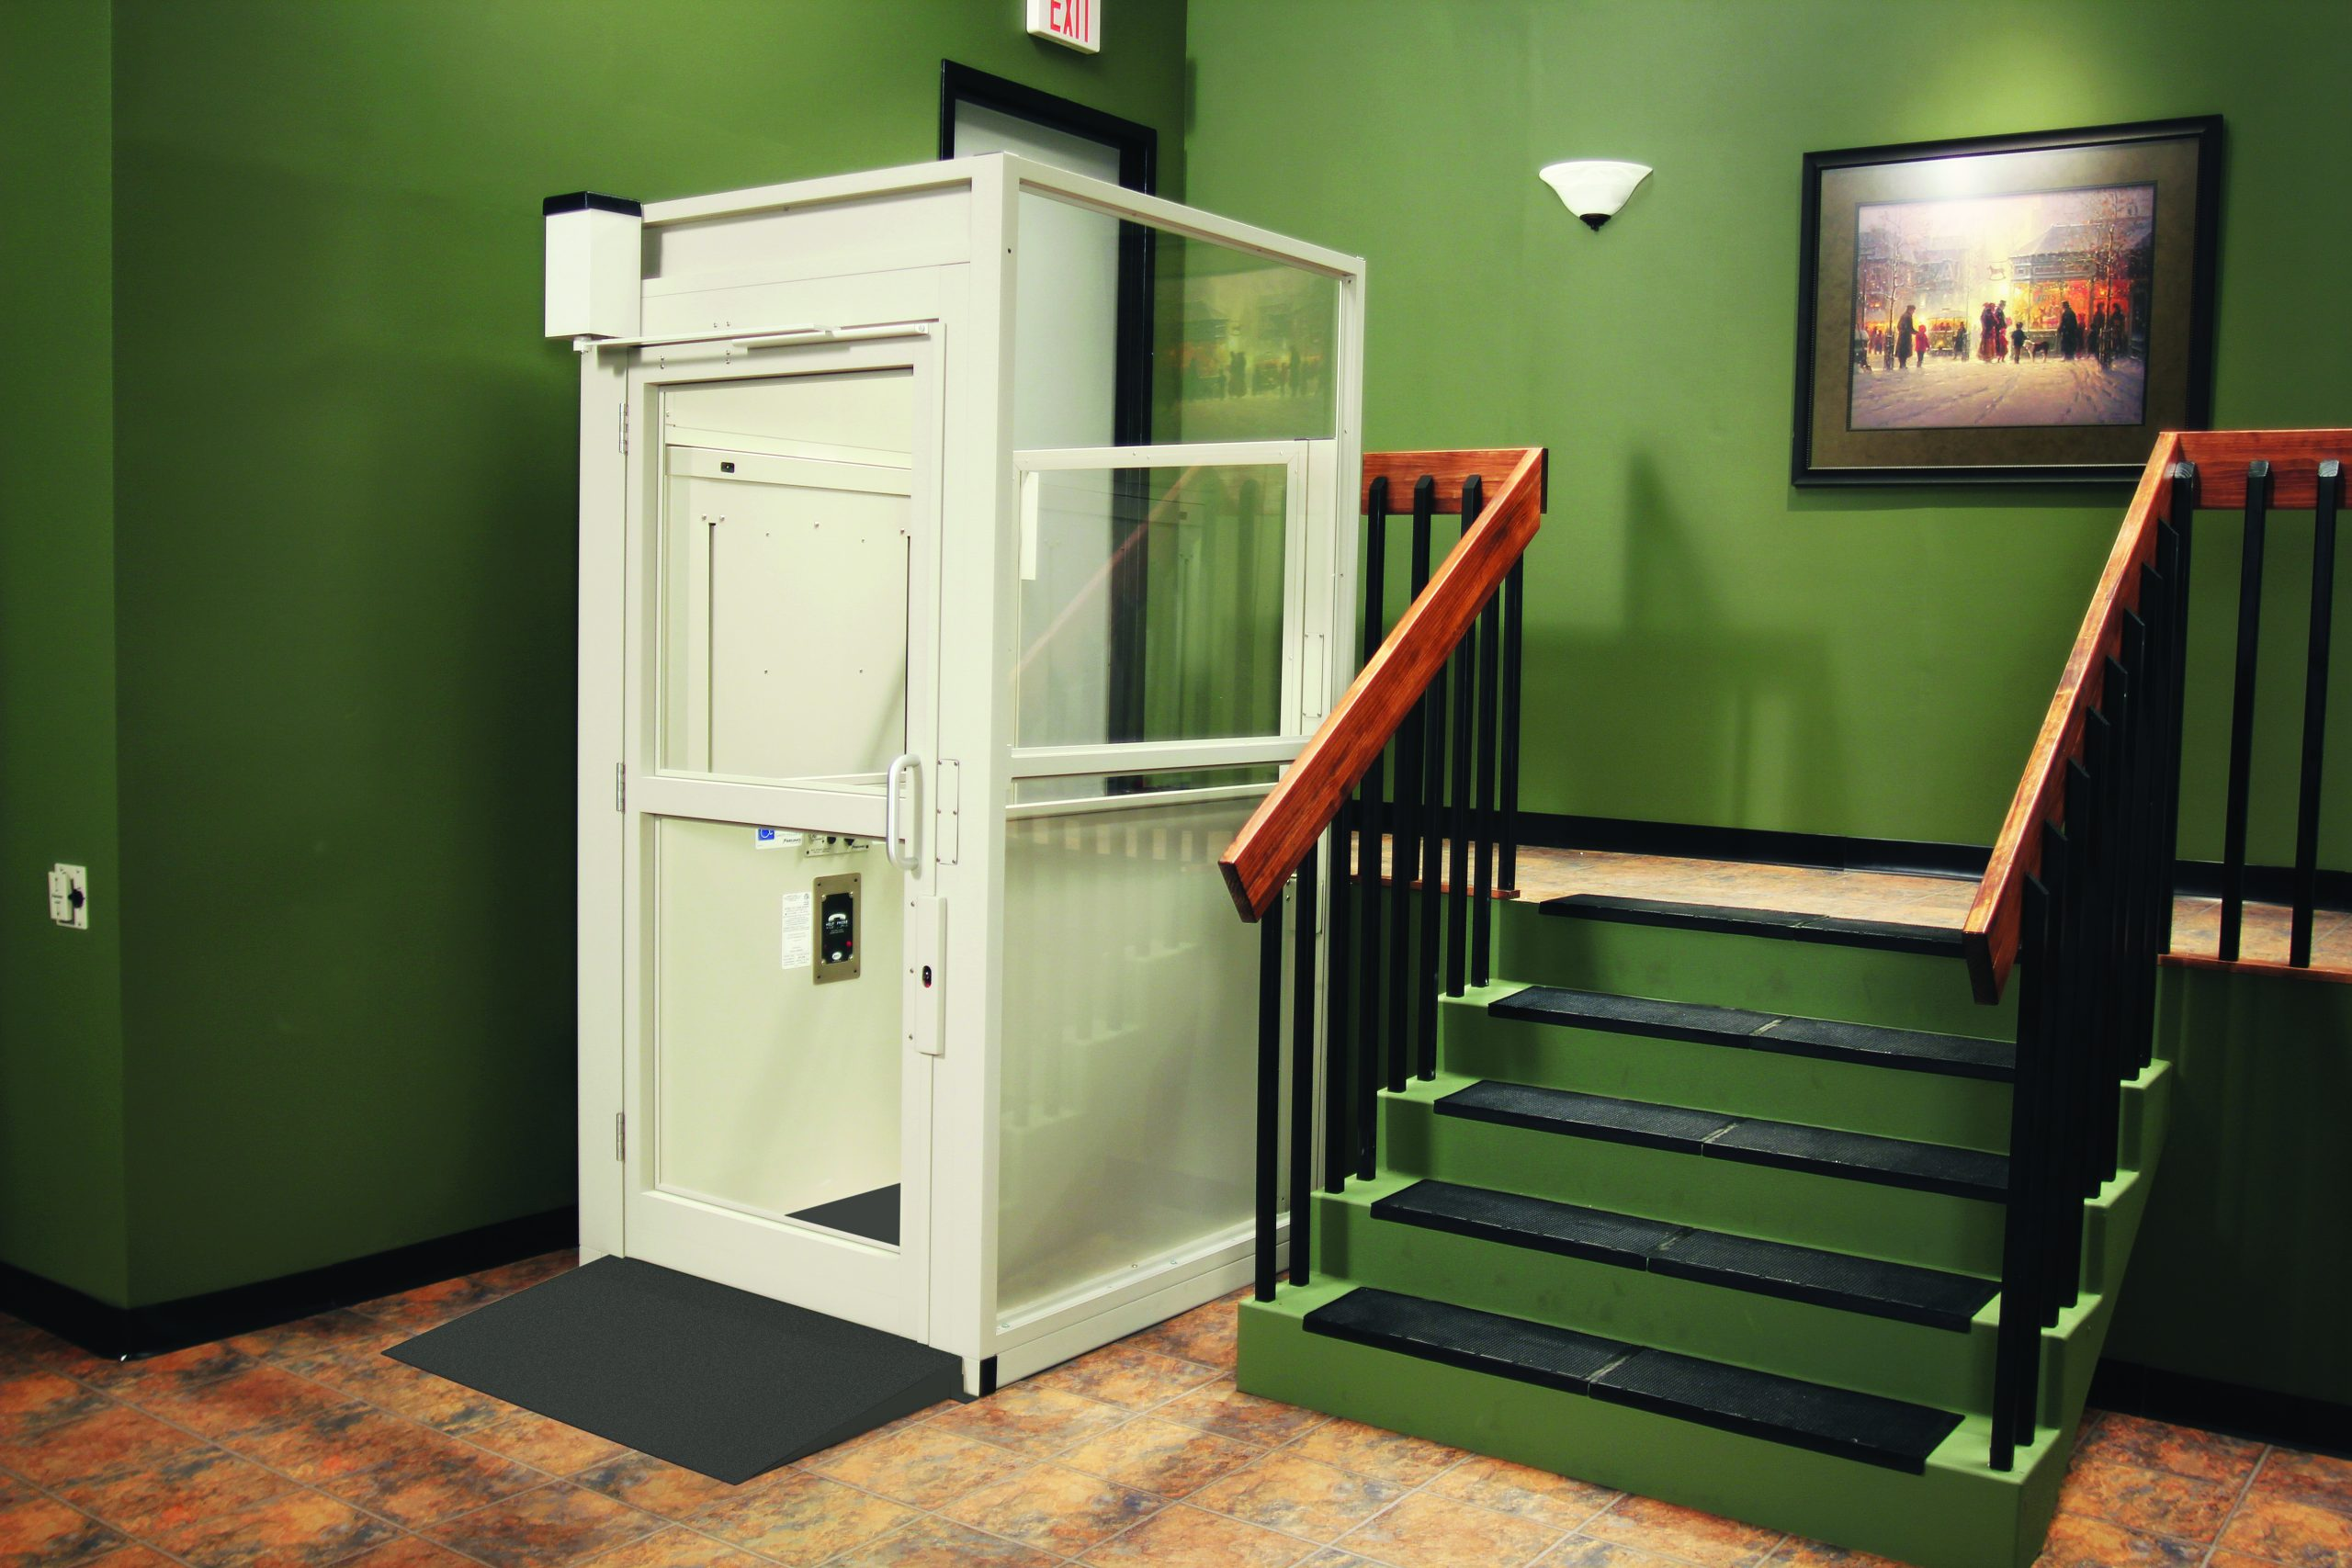 The Bruno Commercial Vertical Platform Lift inside a green room beside stairs